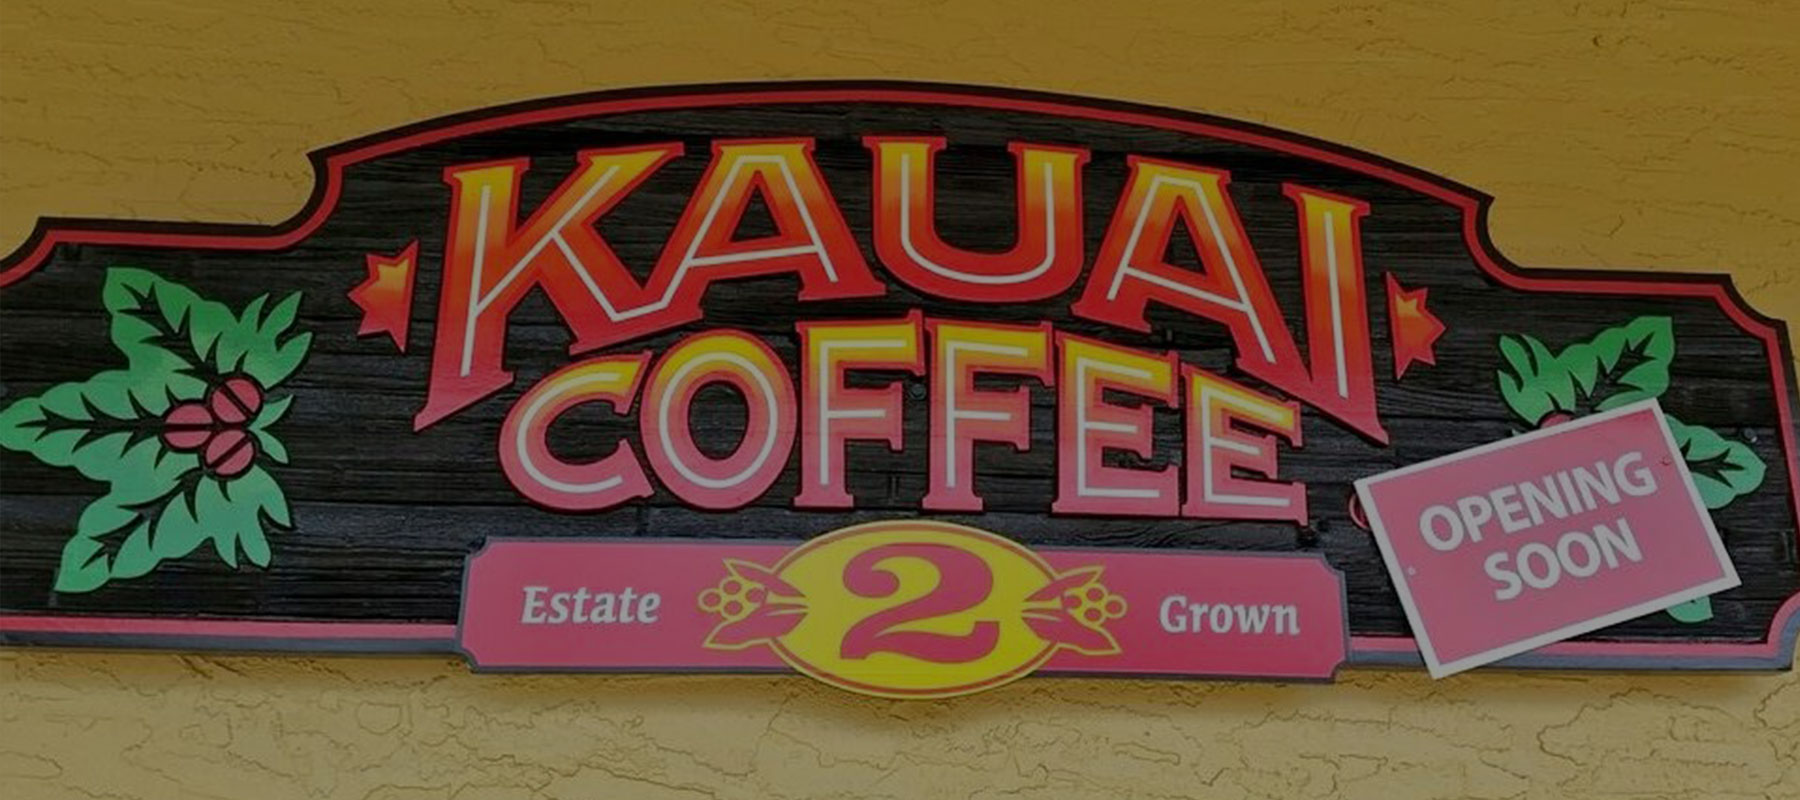 Kauai Coffee 2 retail store in Kapaa, Kauai